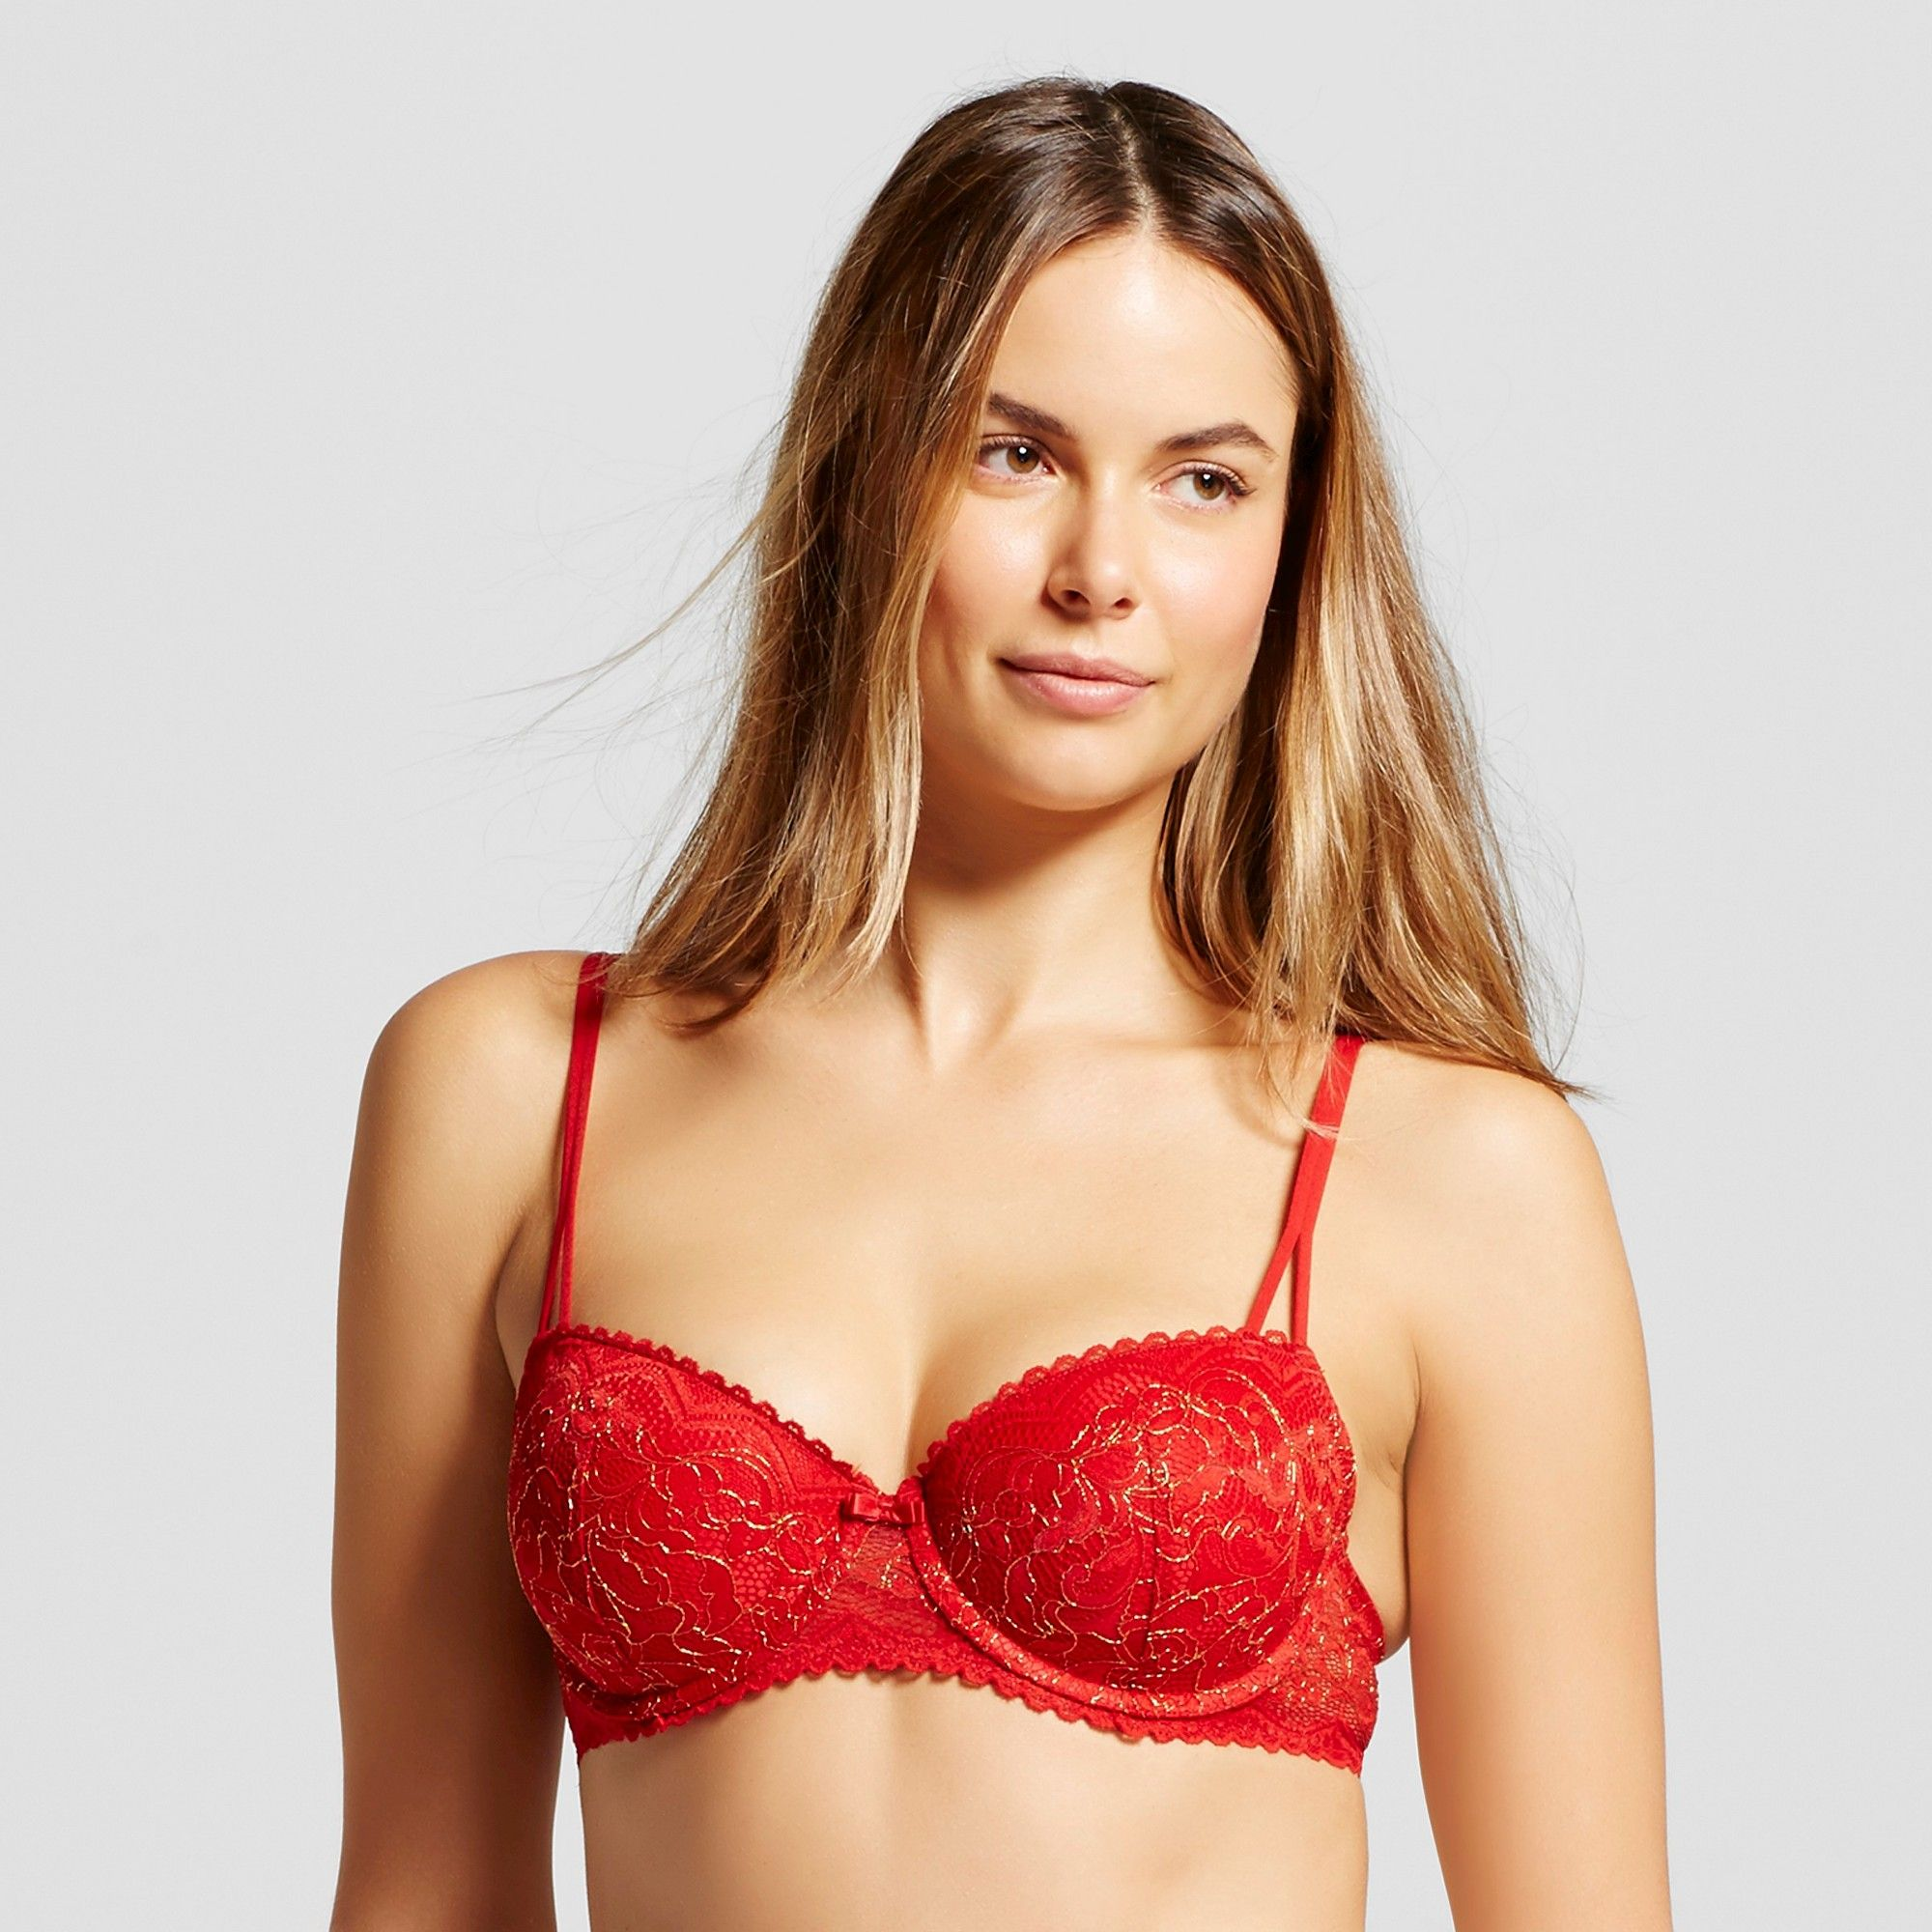 f99f57b25e236 Women s Push-Up Balconette Bra Ripe Red 34B